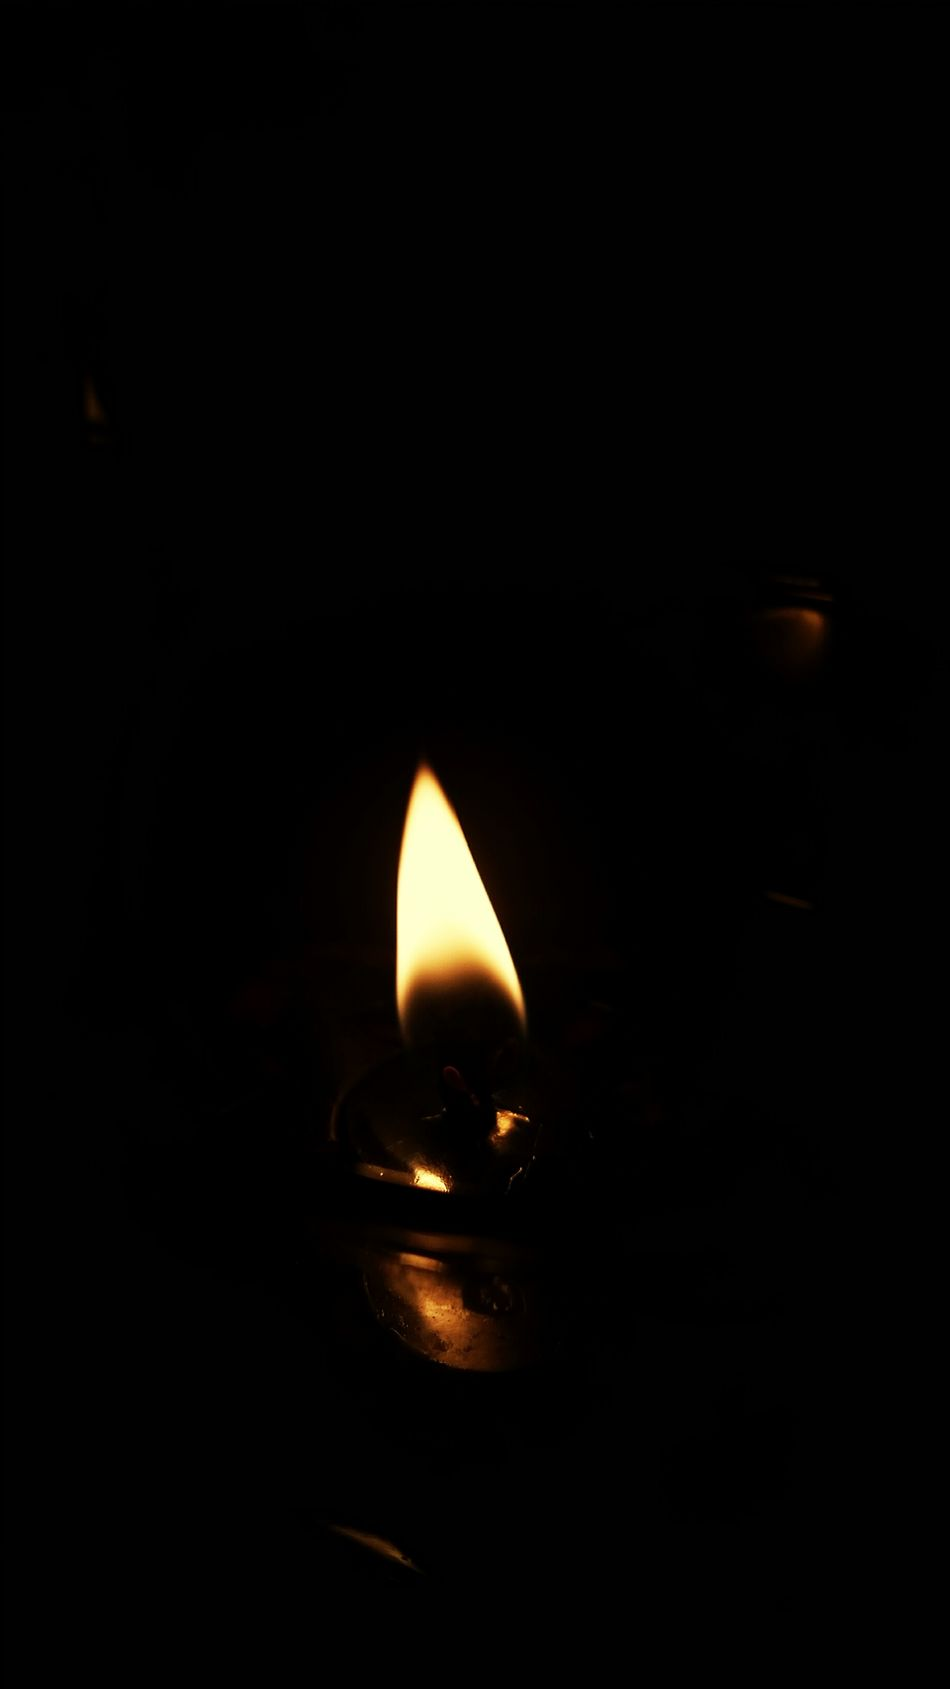 Candle Night Dinner My Hubby My Love❤ Happyday Assalamualaikum Hanging Out Shut Up And Kiss Me:*